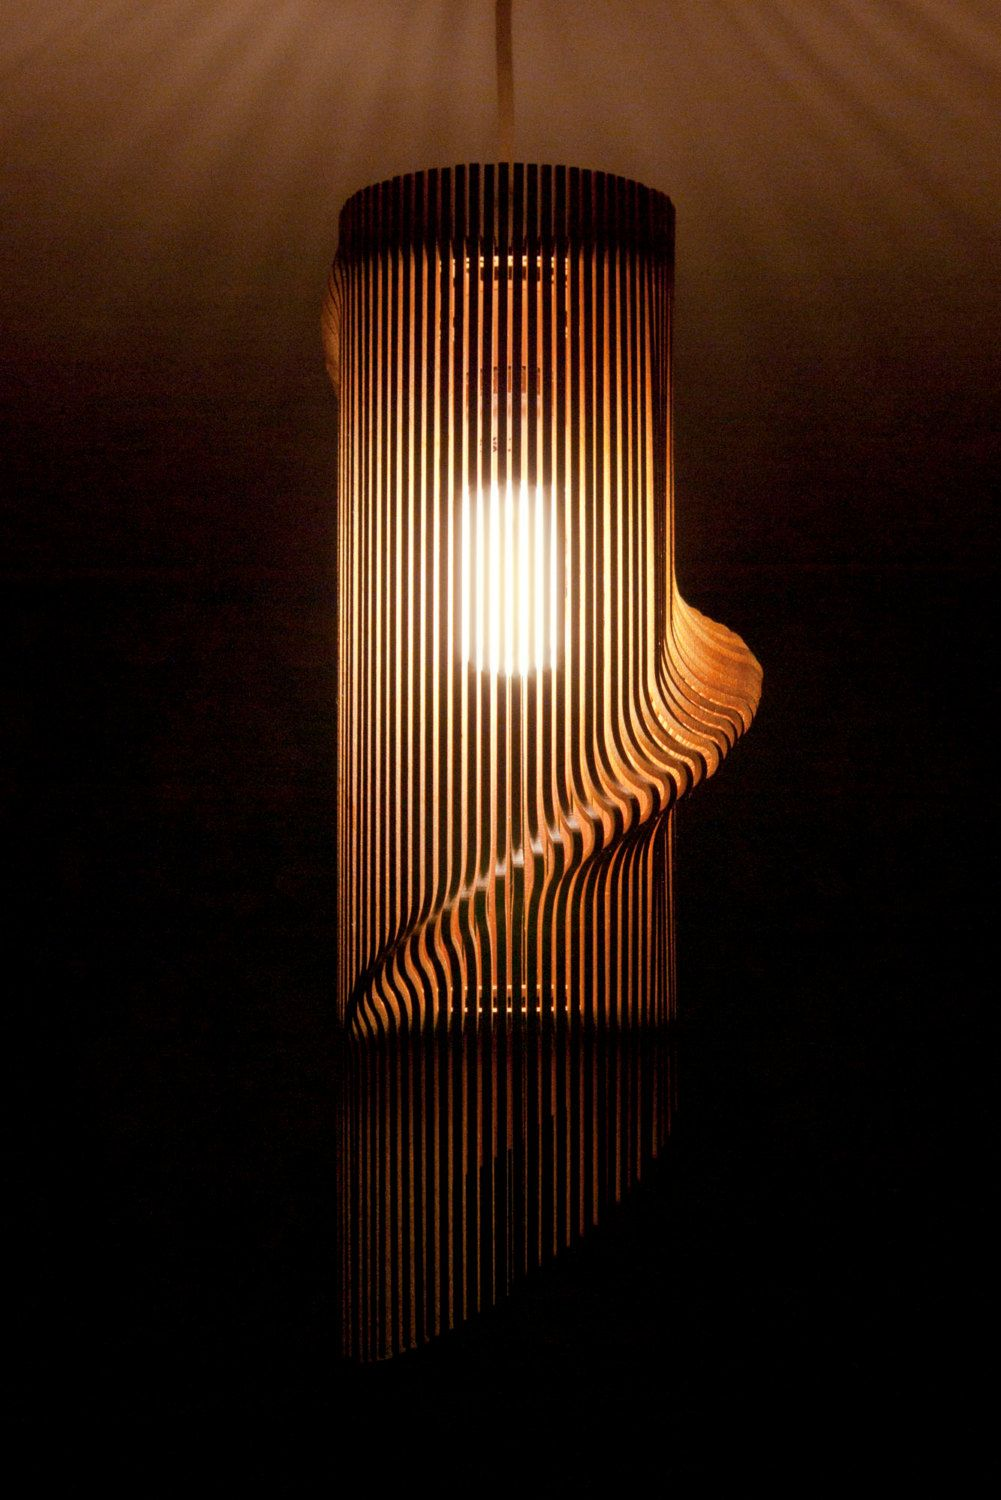 Cool lamp shades - Twisted Lasercut Wooden Lampshade No 1